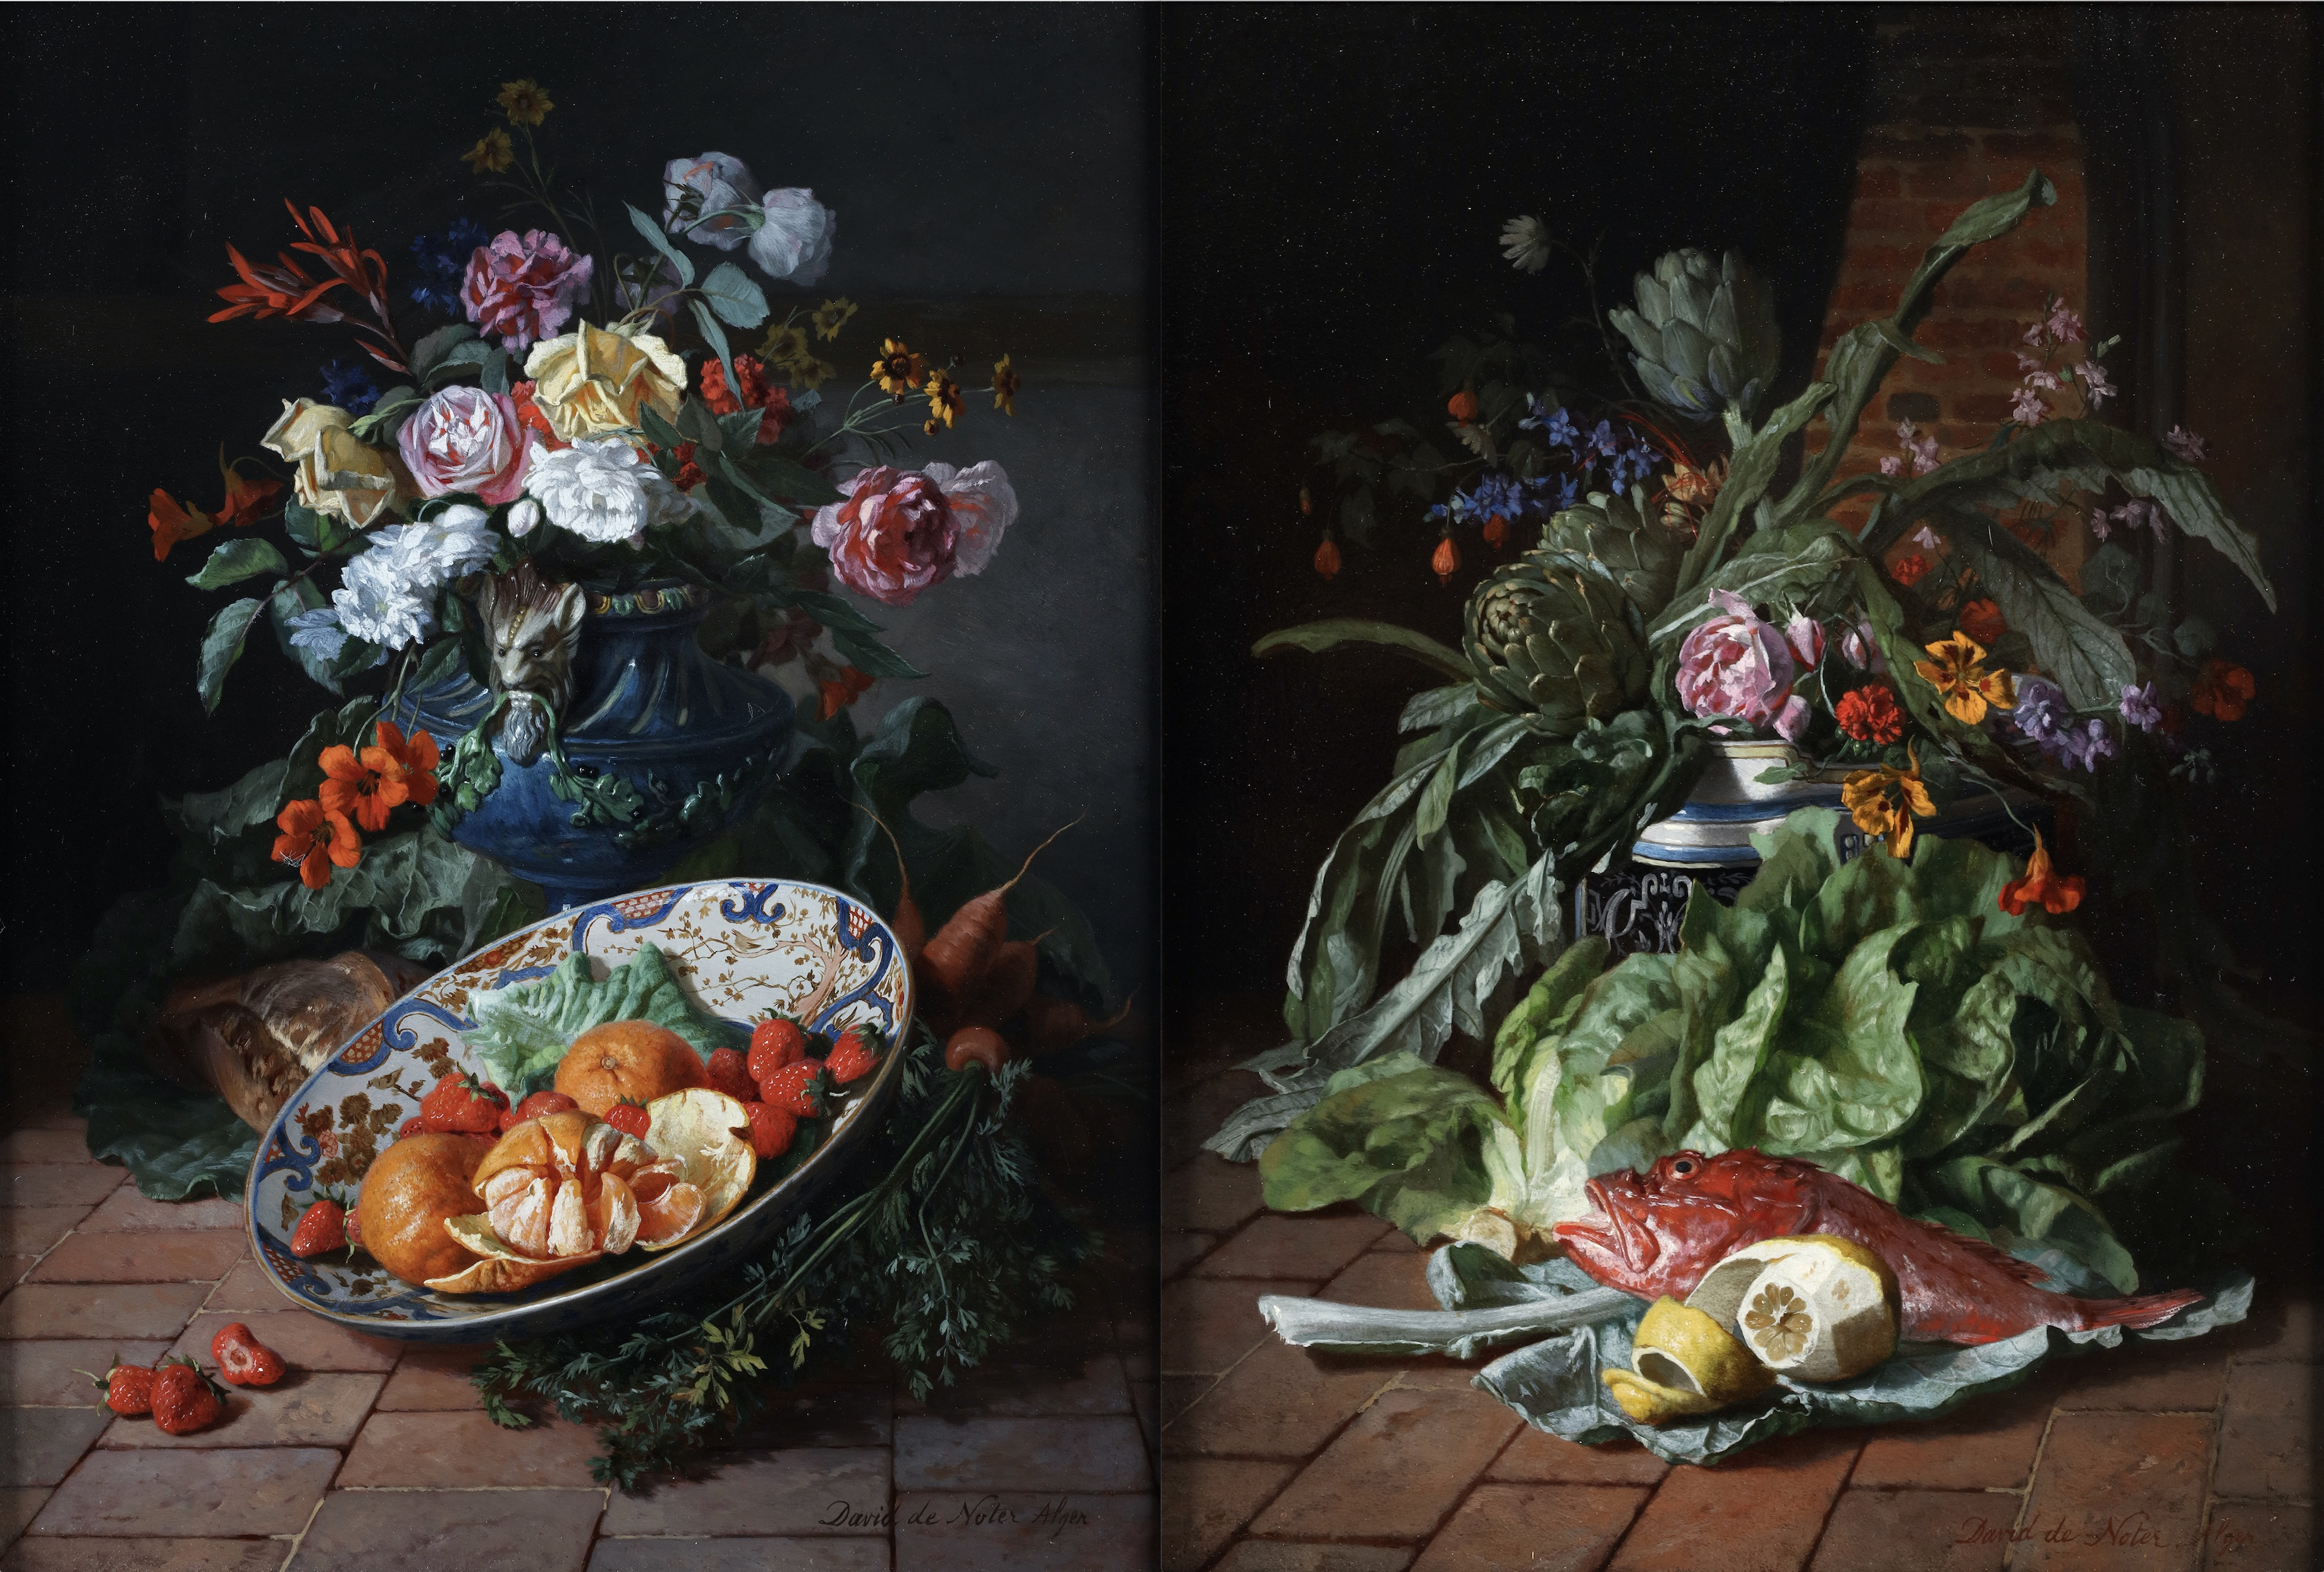 Flowers in a vase with fruits in a China bowl & Flowers in a vase with a still life with vegetables, a lemon and red sea bass.